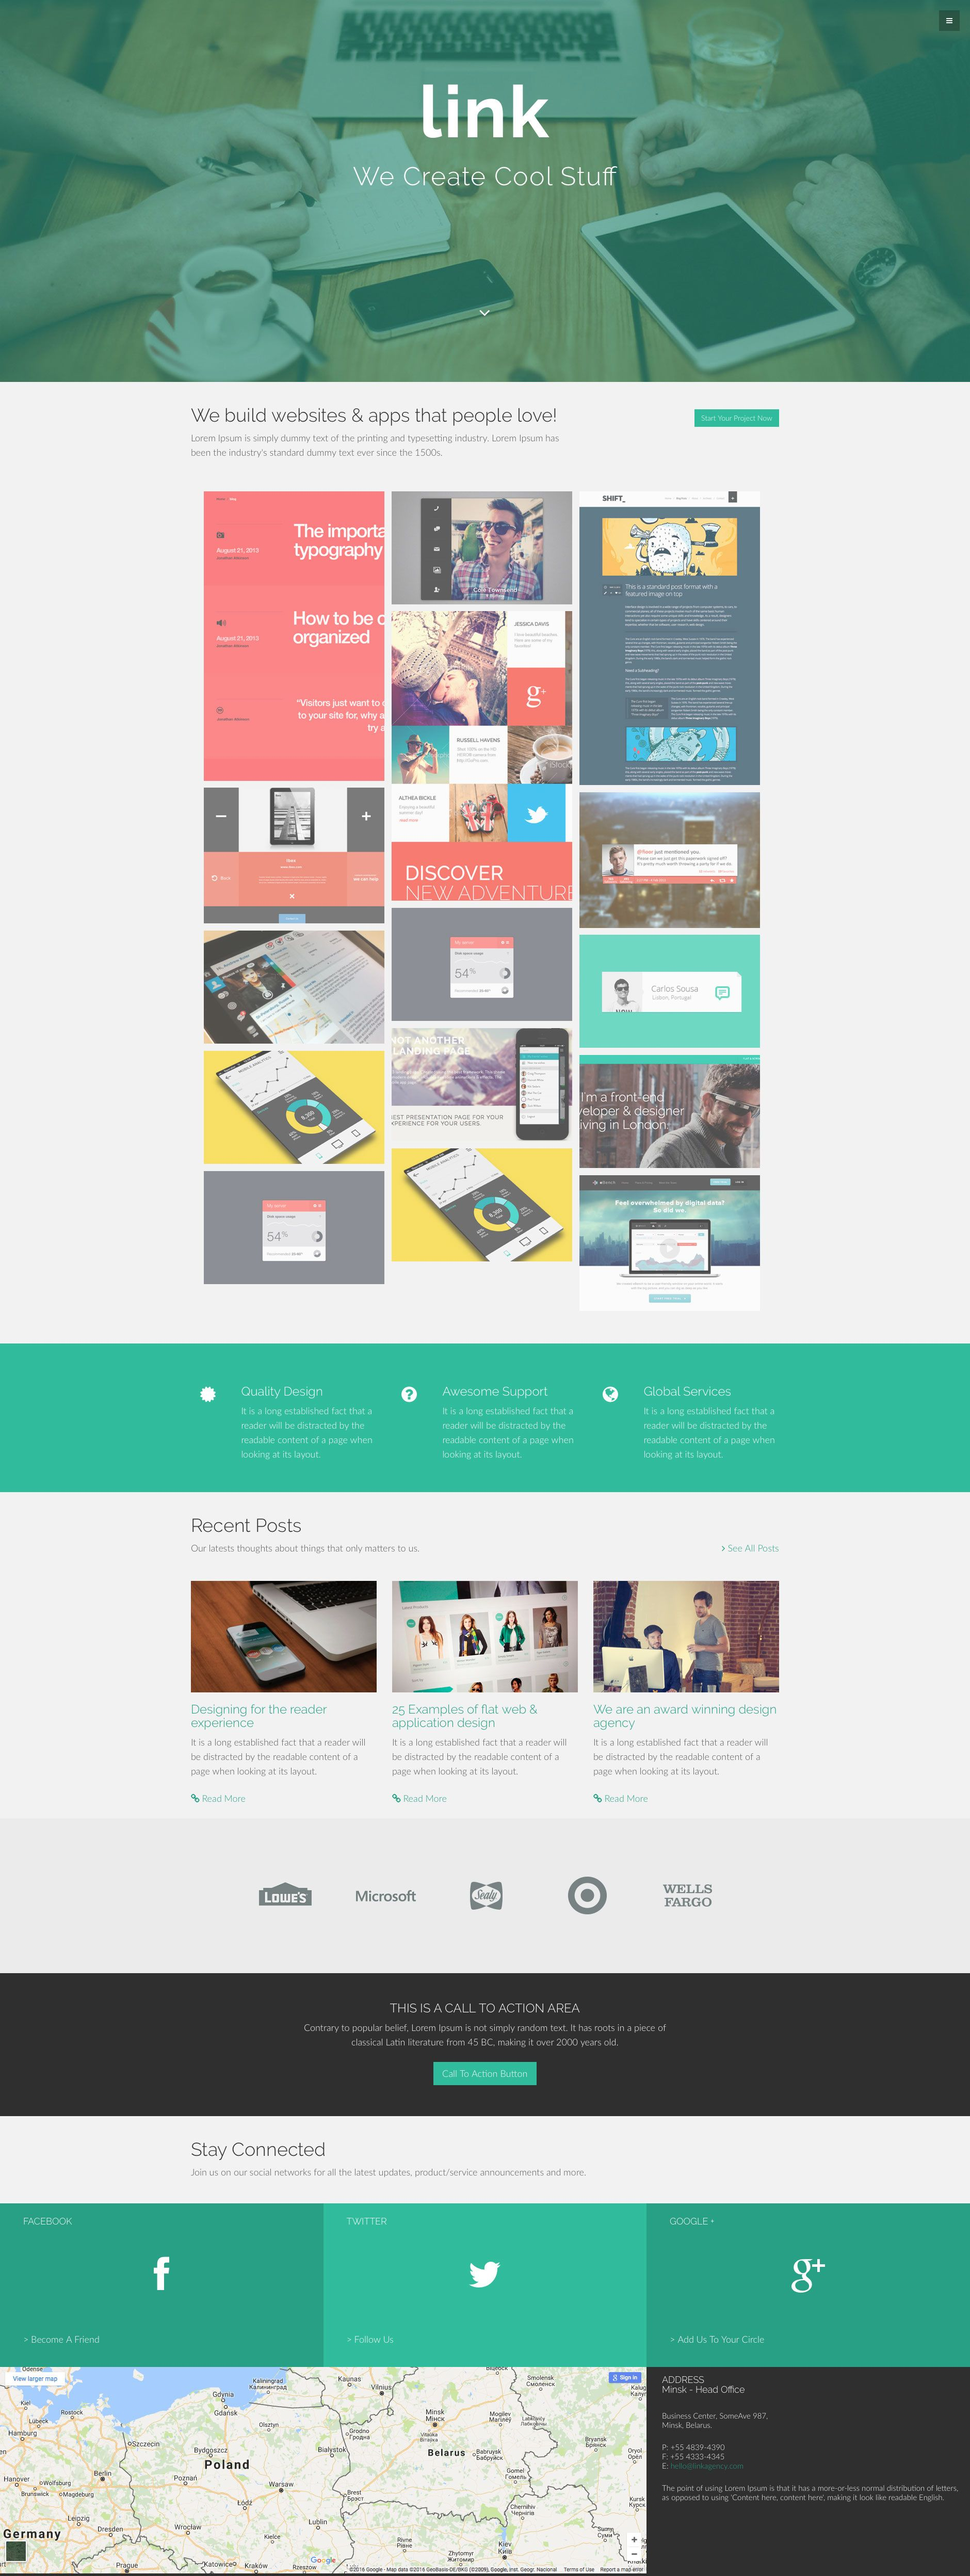 Link is a free responsive HTML5 template built on the